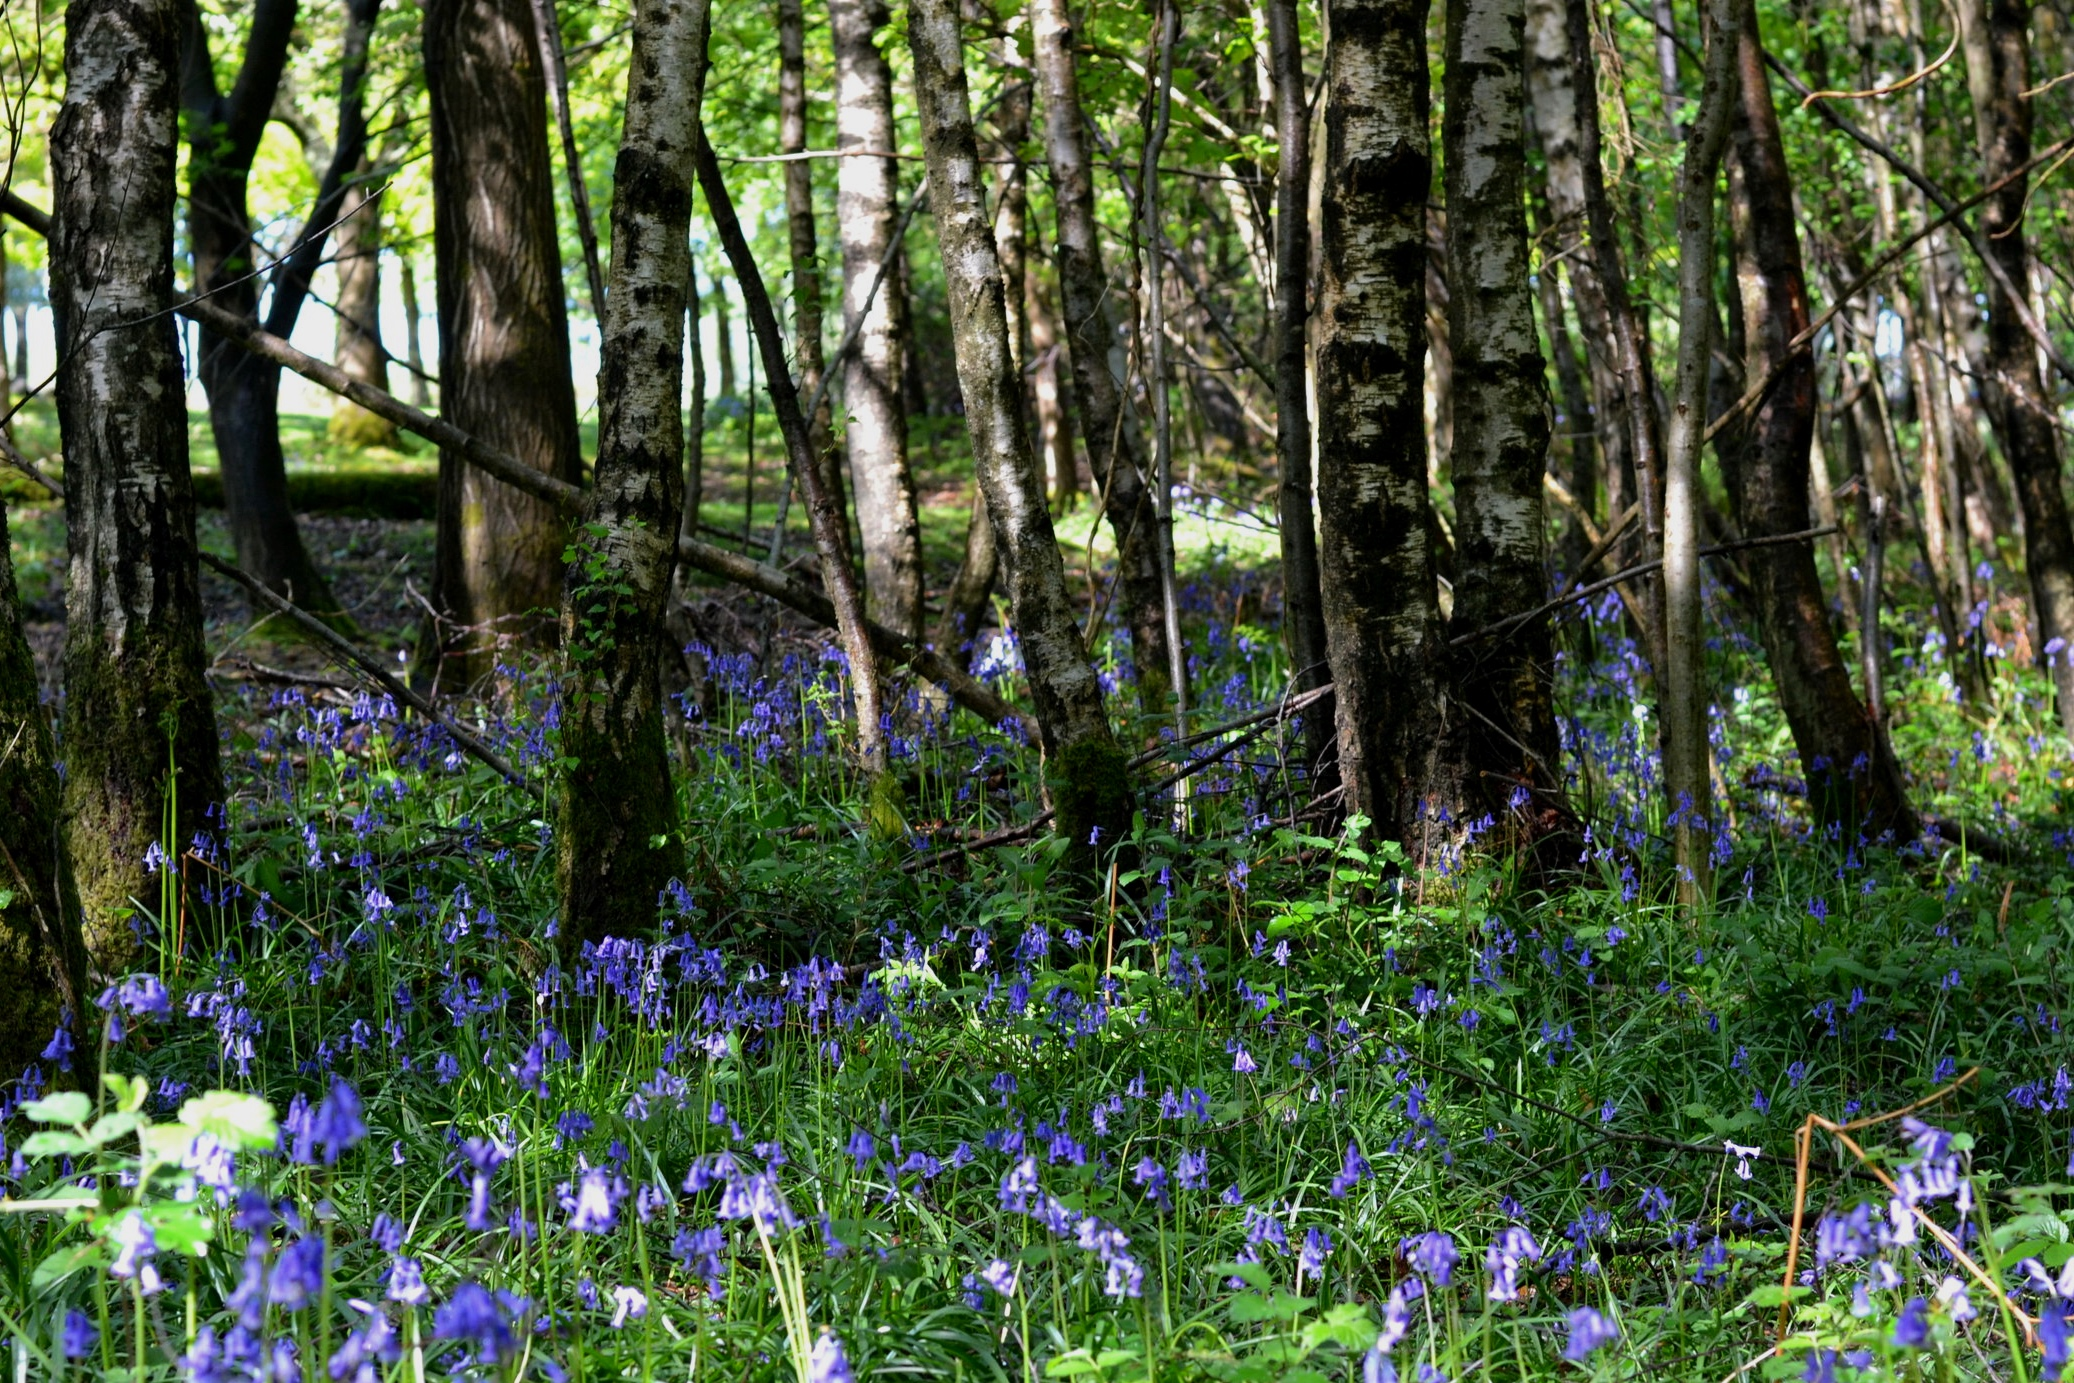 Bluebells, Woodland, Royal Tunbridge Wells, May 2019